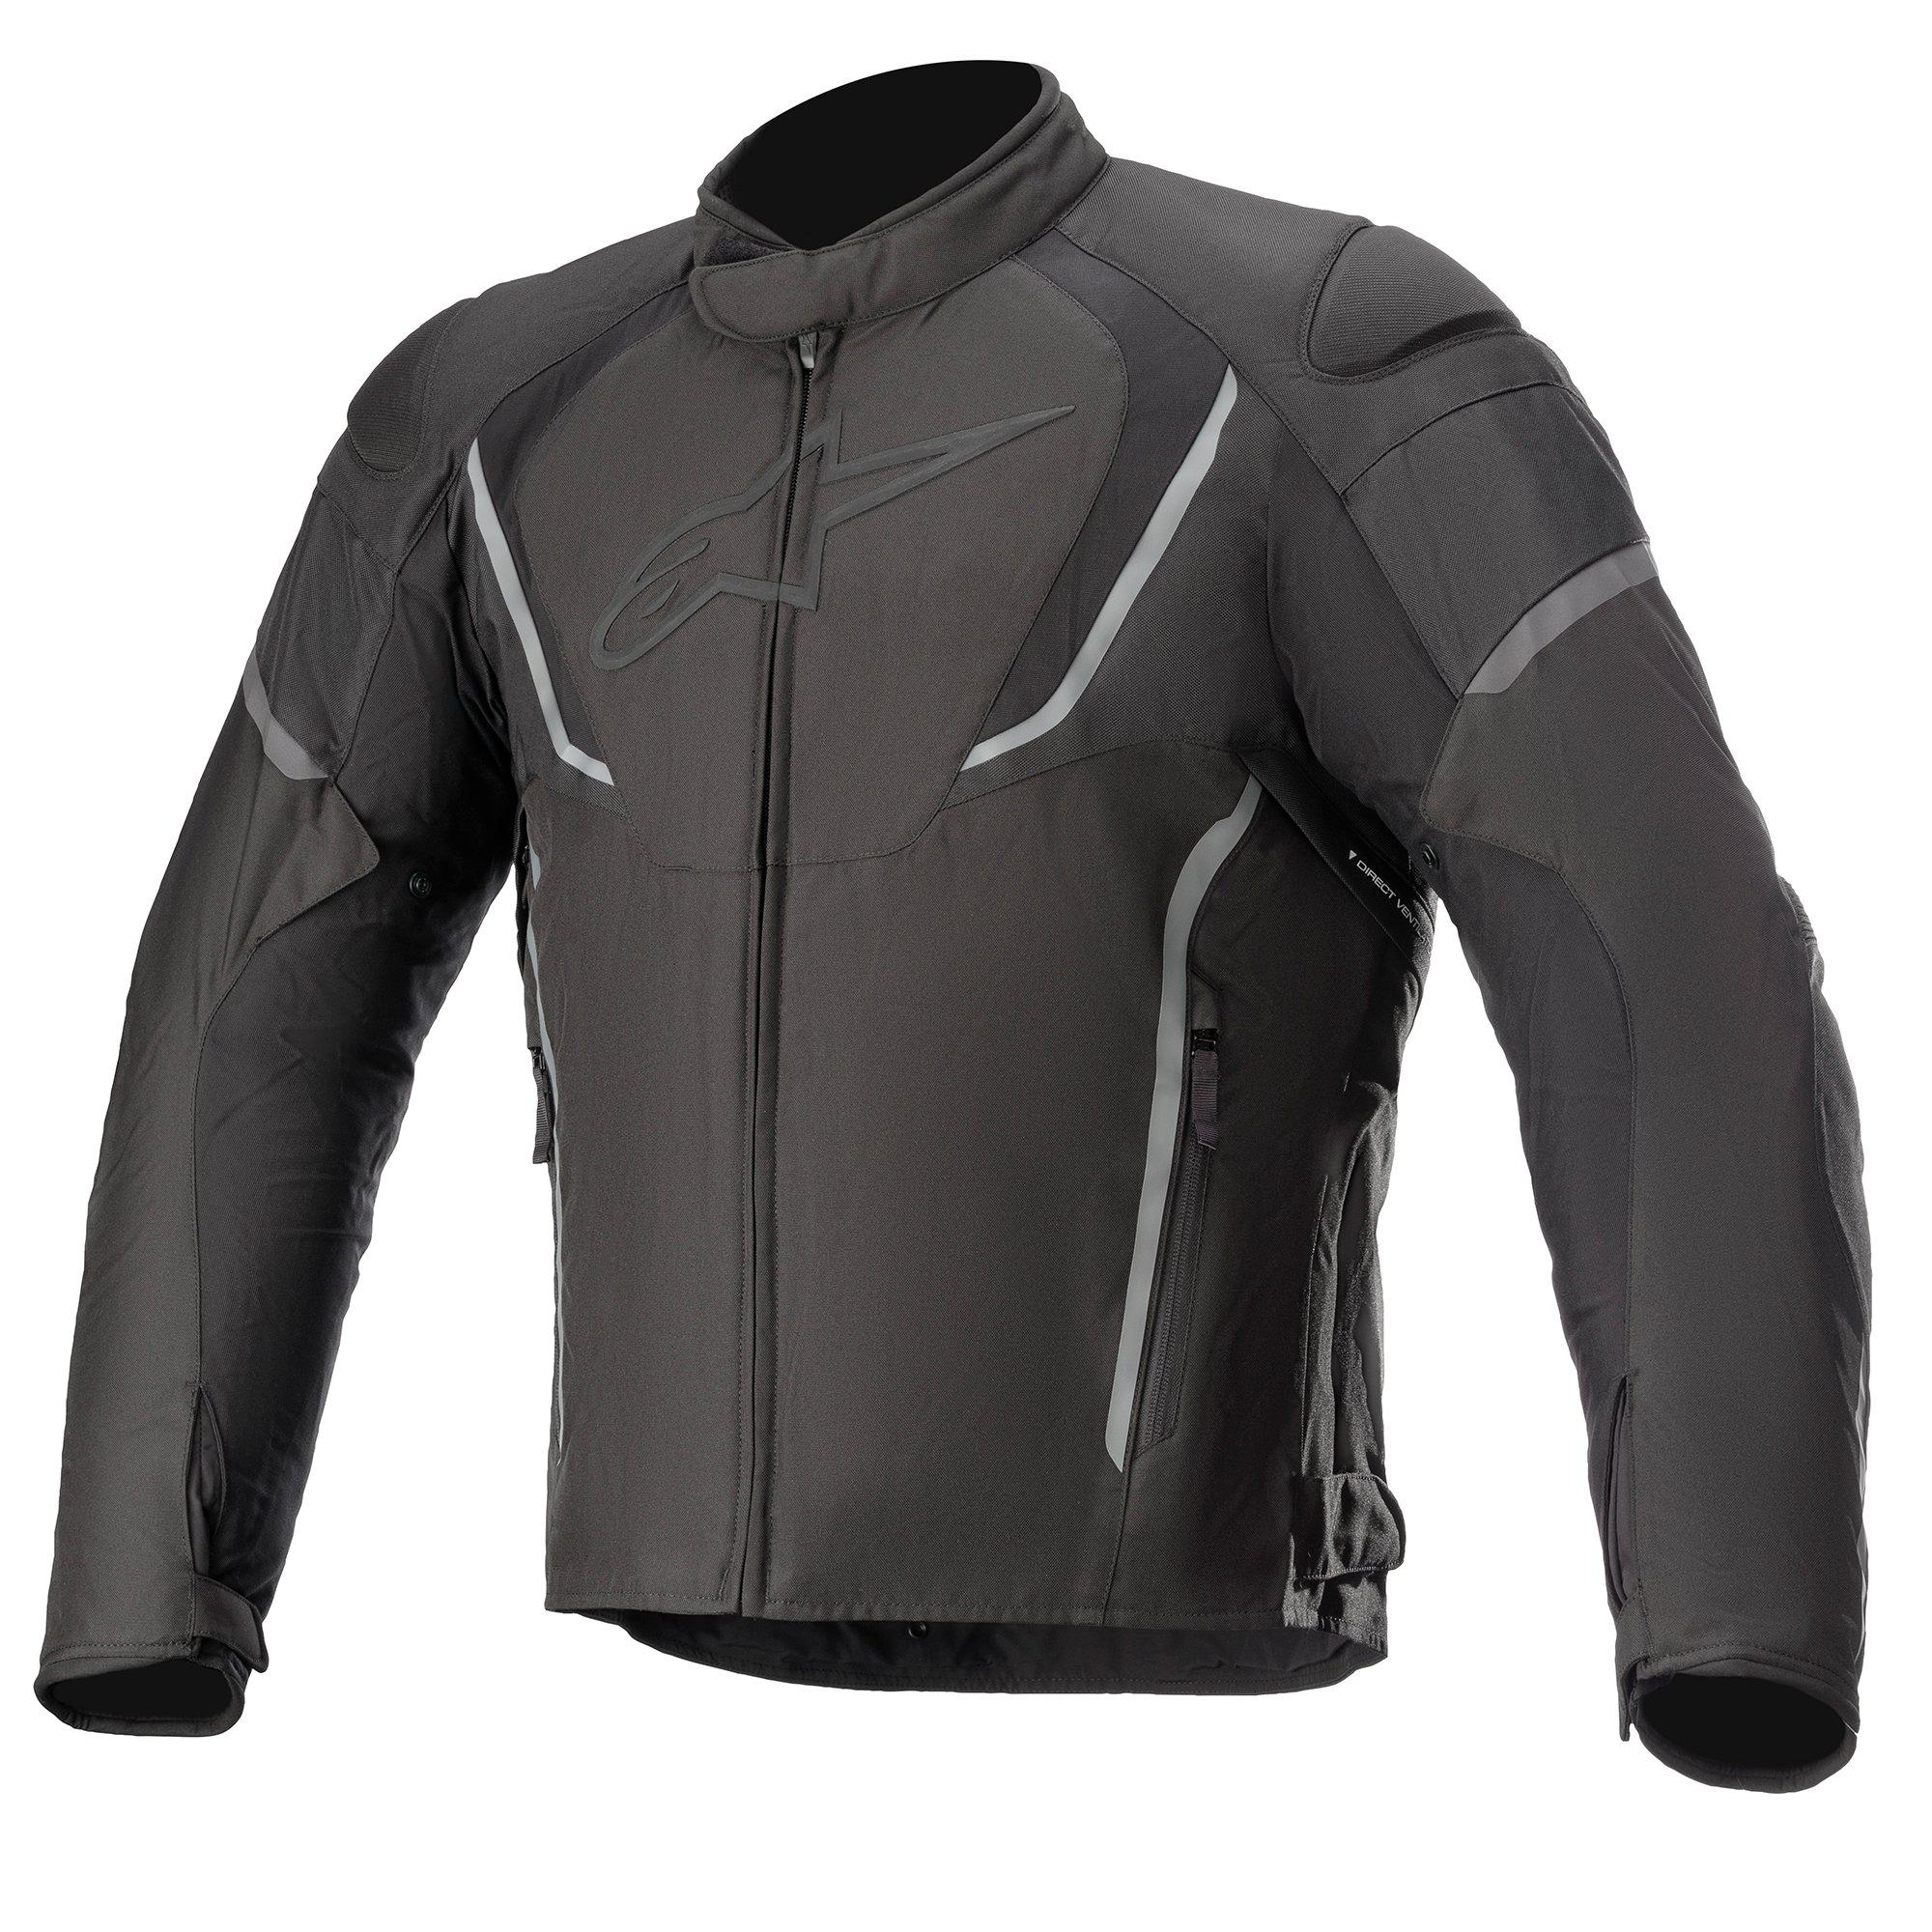 T-Jaws V3 Waterproof Jacket